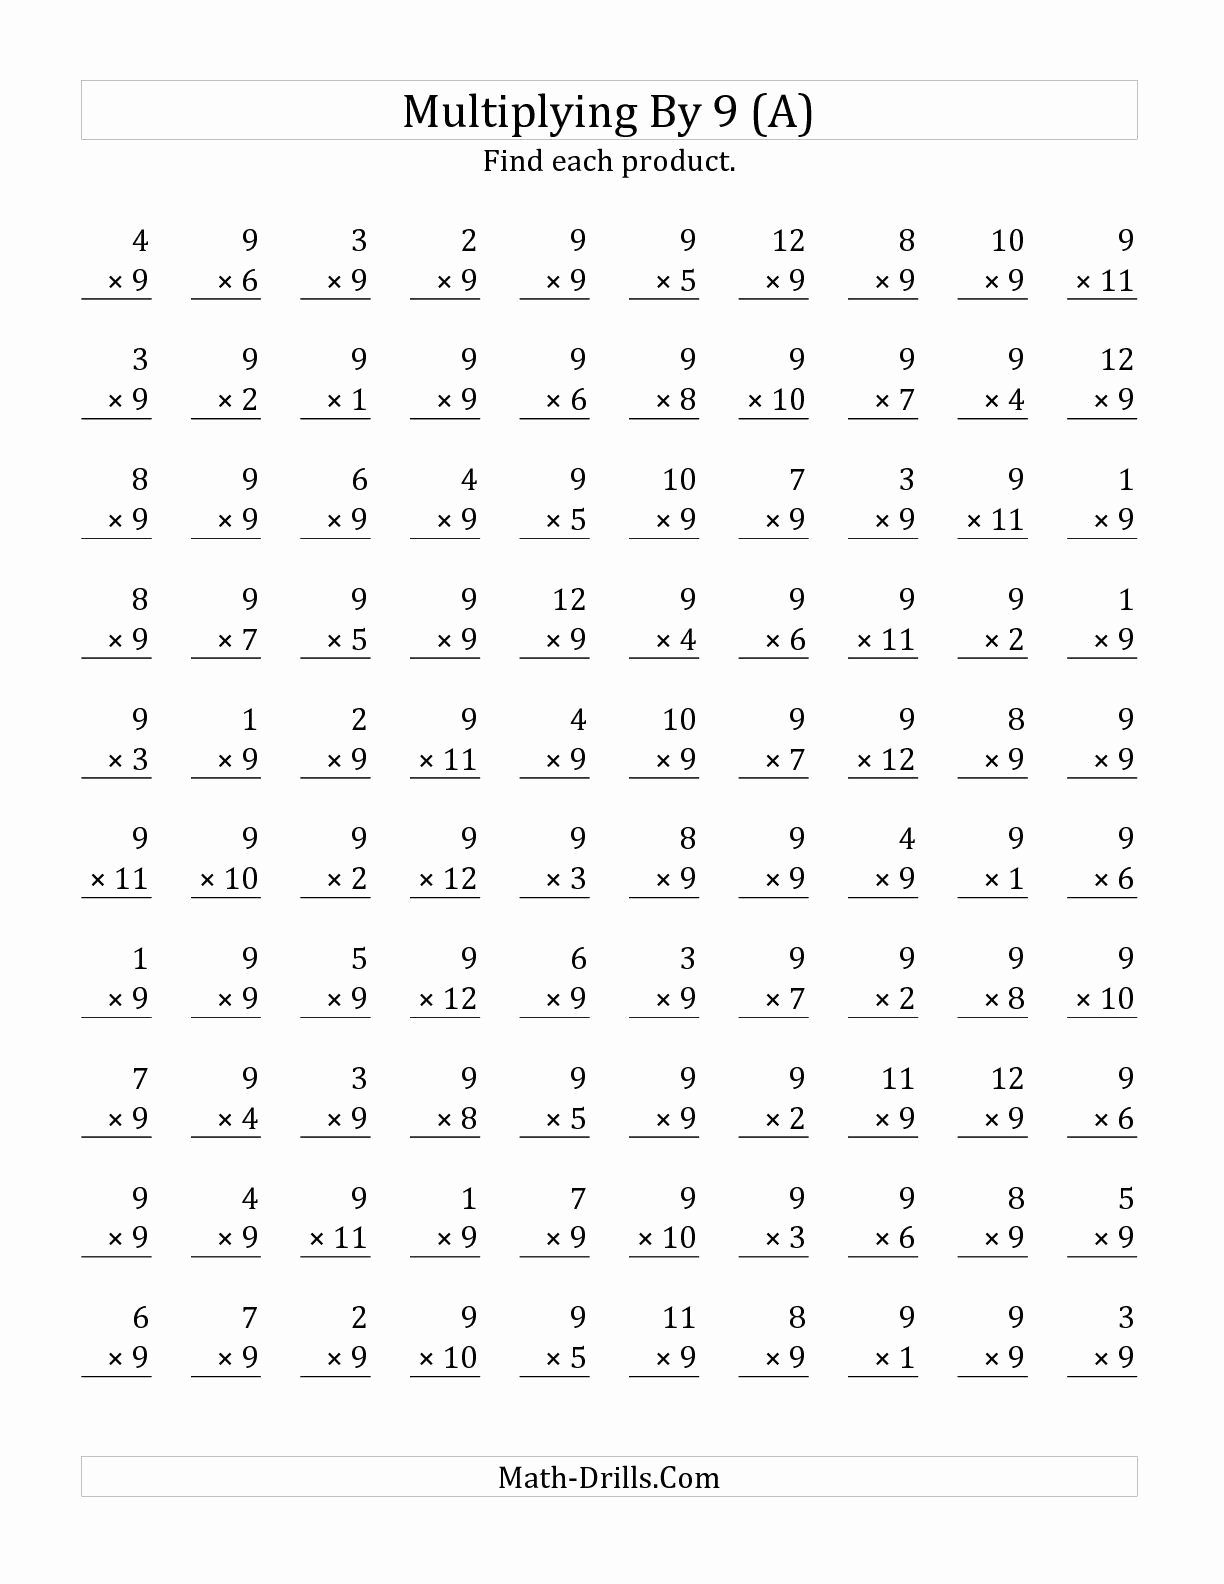 Make Your Own Multiplication Worksheets Lovely the Multiplying 1 to 12 by 9 A Math Worksheet From the